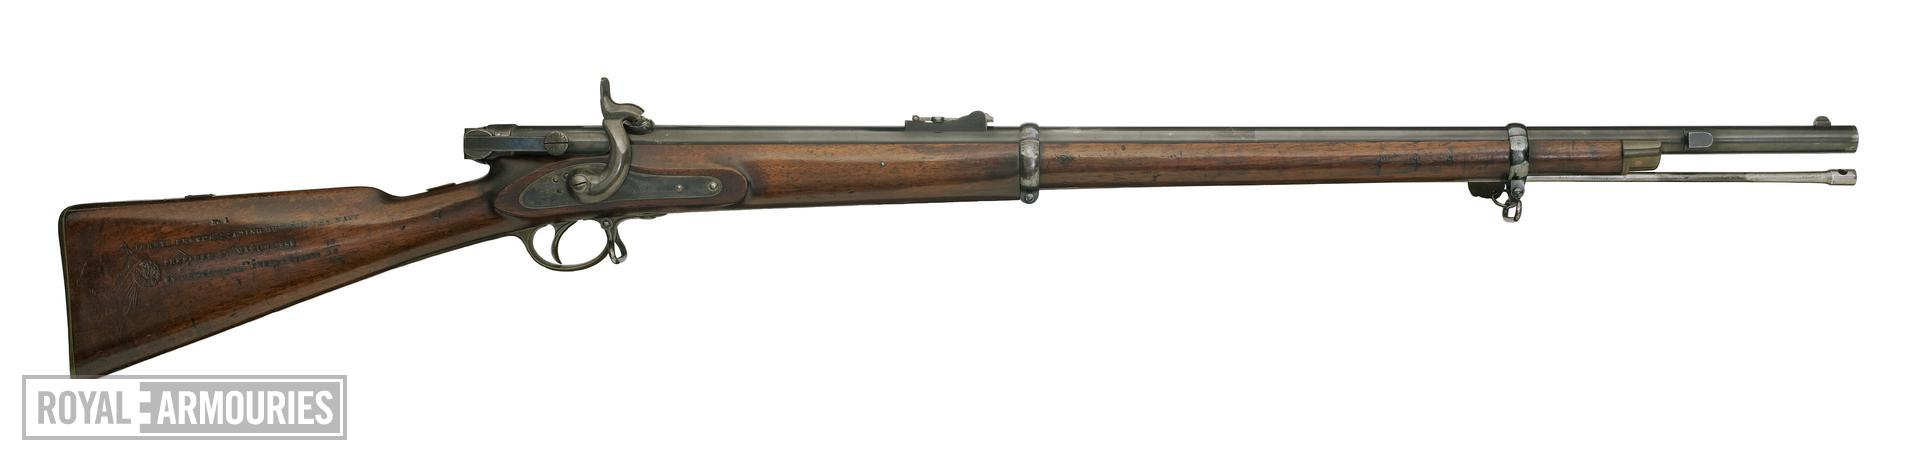 Percussion breech-loading military rifle - Calisher and Terry model for the Navy, sealed pattern